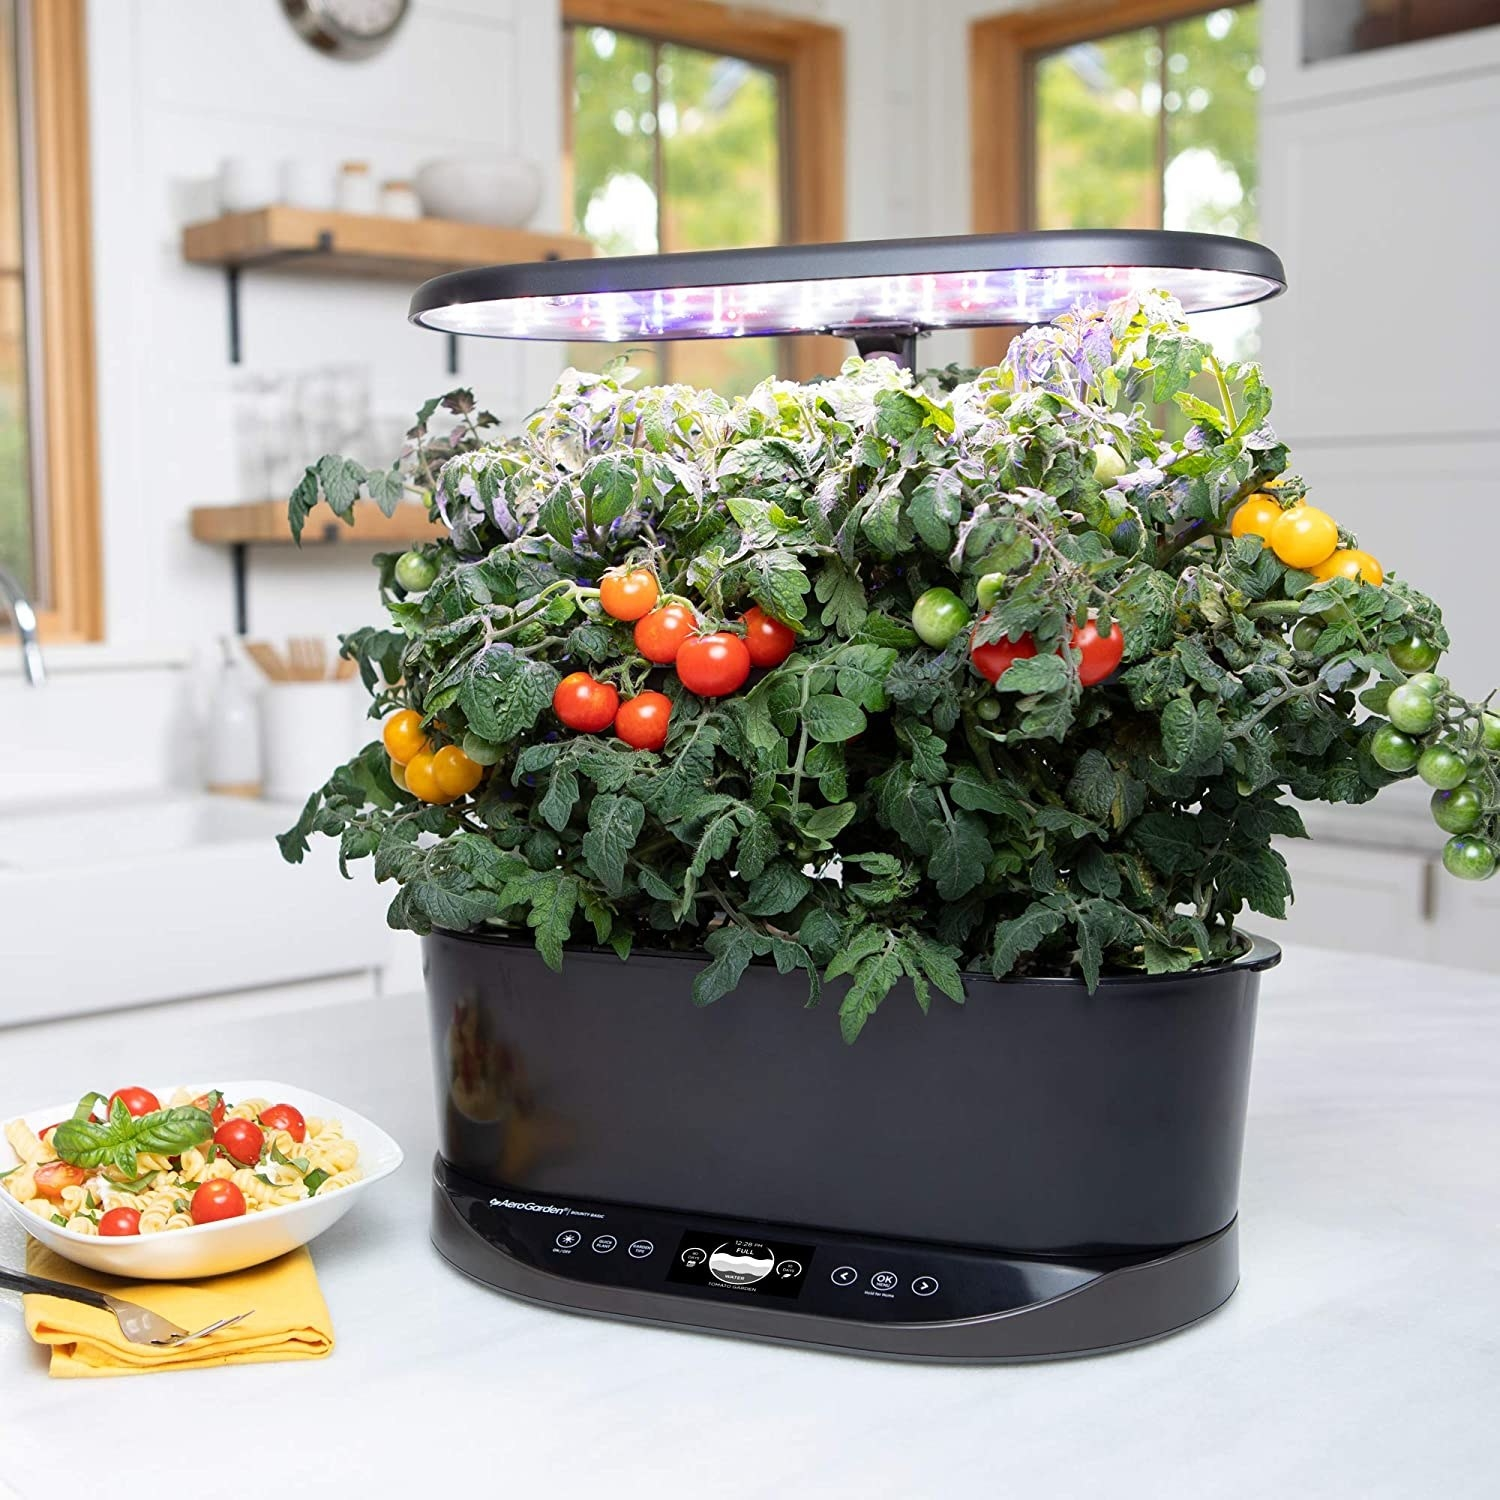 The Aerogarden with tomatoes growing inside of it